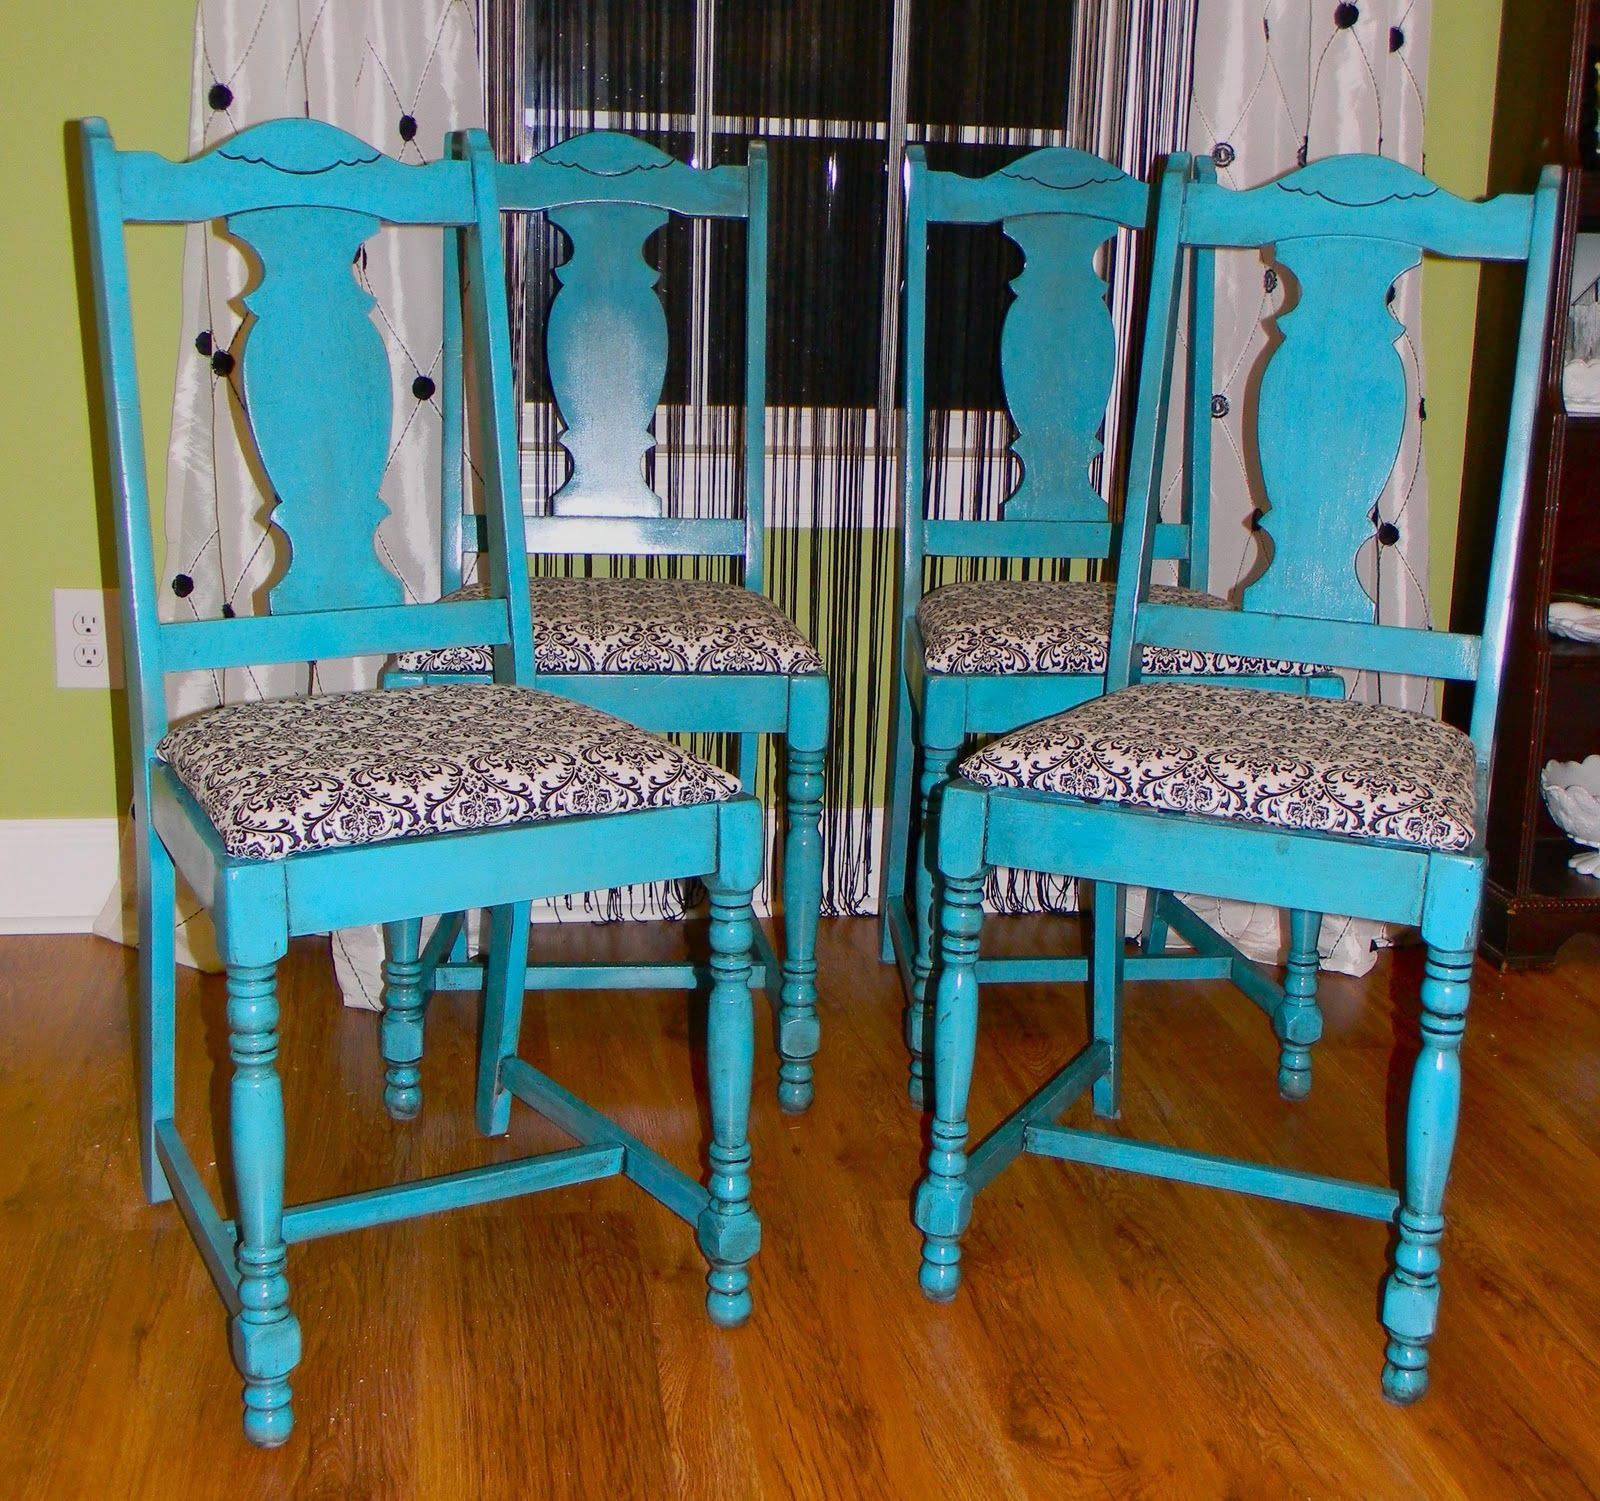 Cute dining room chairs turquoise pinterest for Sillas comedor turquesa